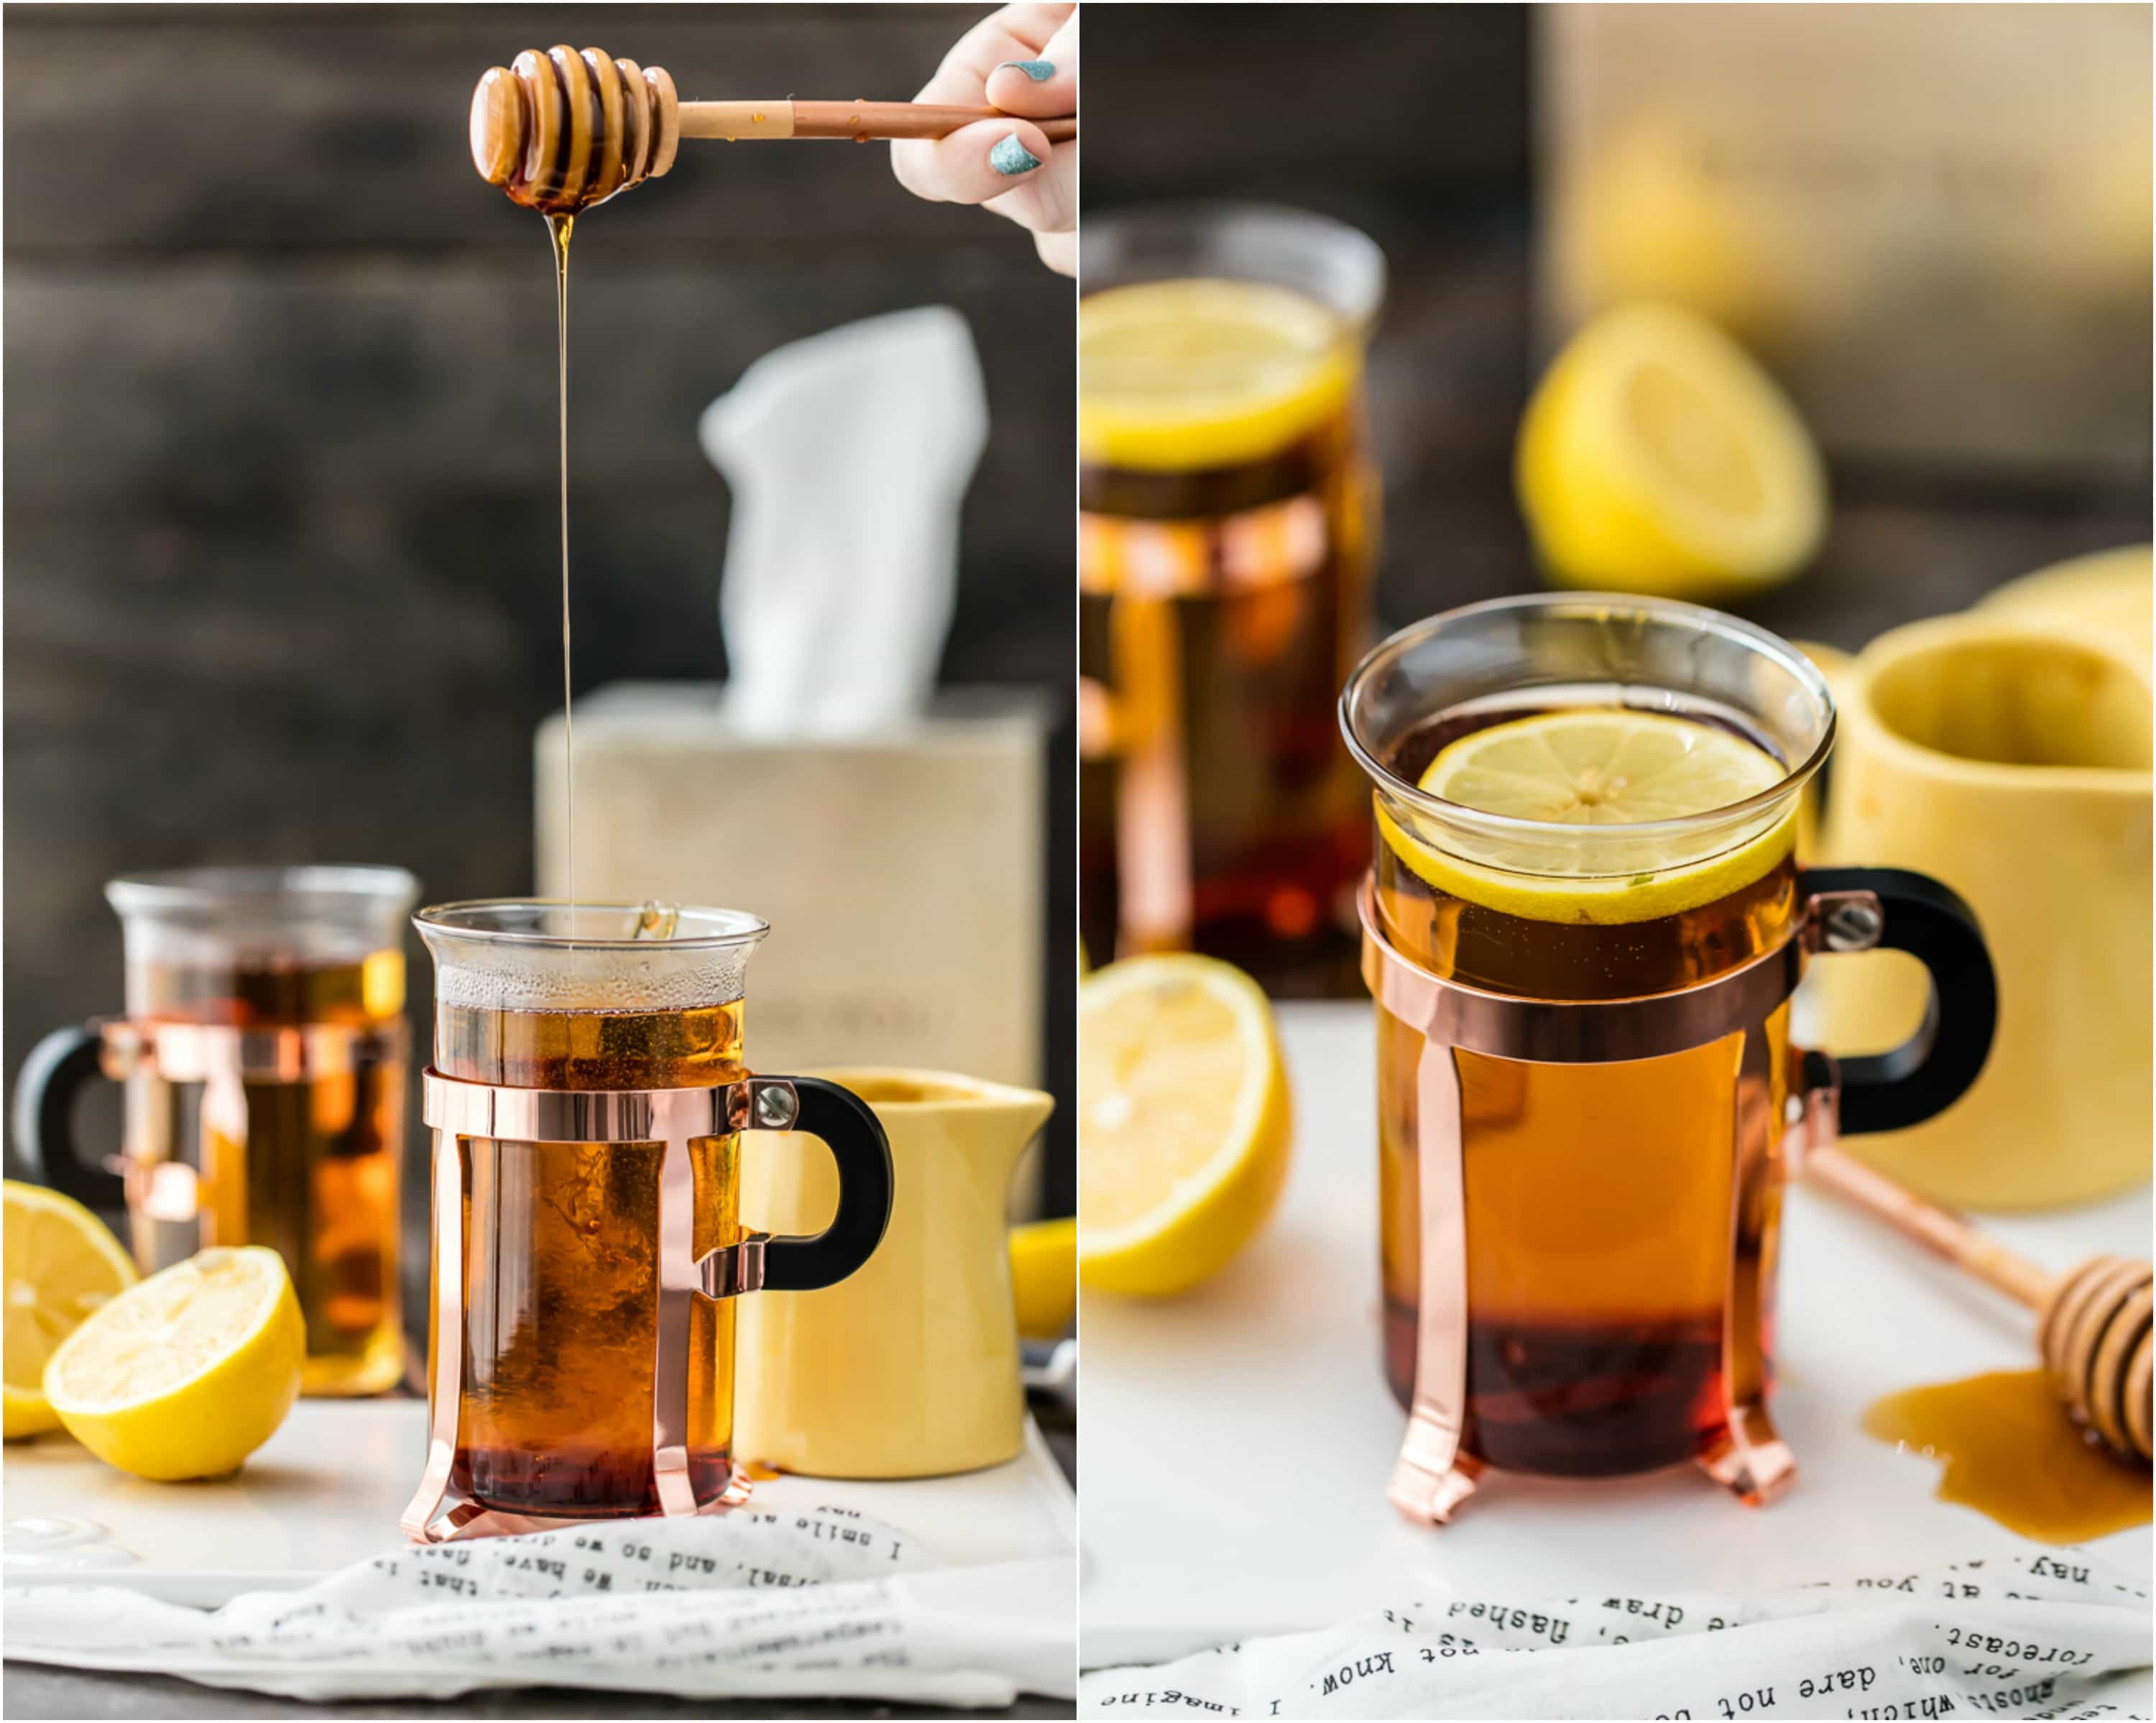 HOT TODDY RECIPE FOR A COLD is my go-to recipe when I'm